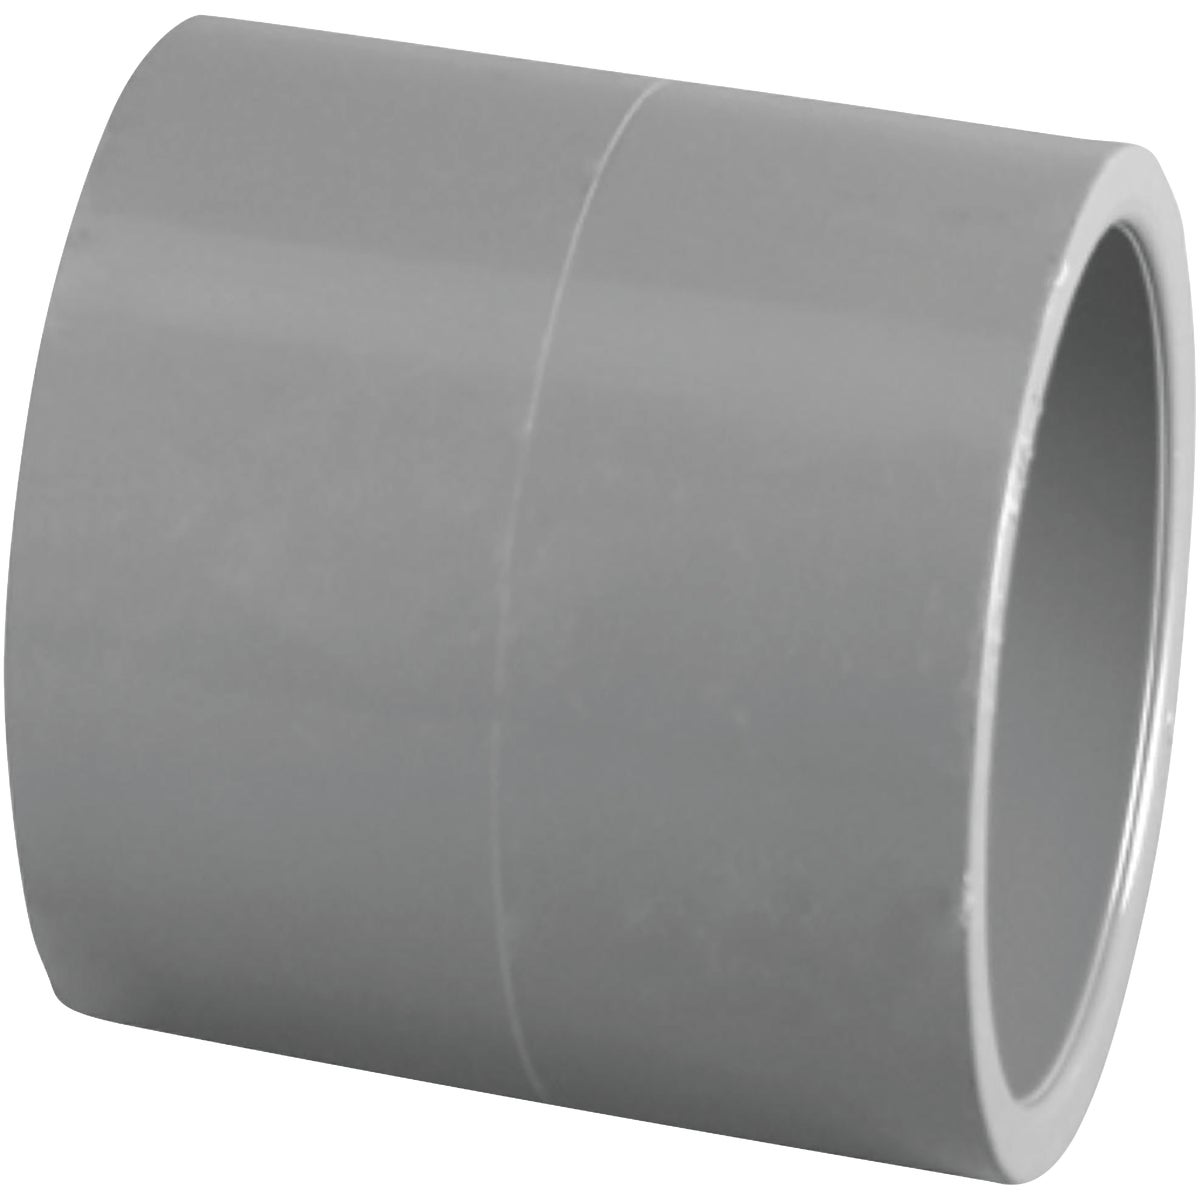 1-1/2 SCH80 PVC COUPLING - 301158 by Genova Inc